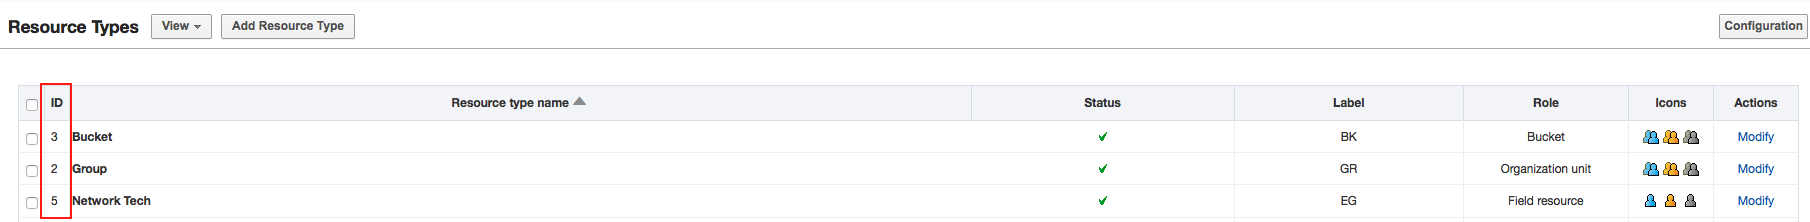 Configuration > Resource Type > ID column is highlighted